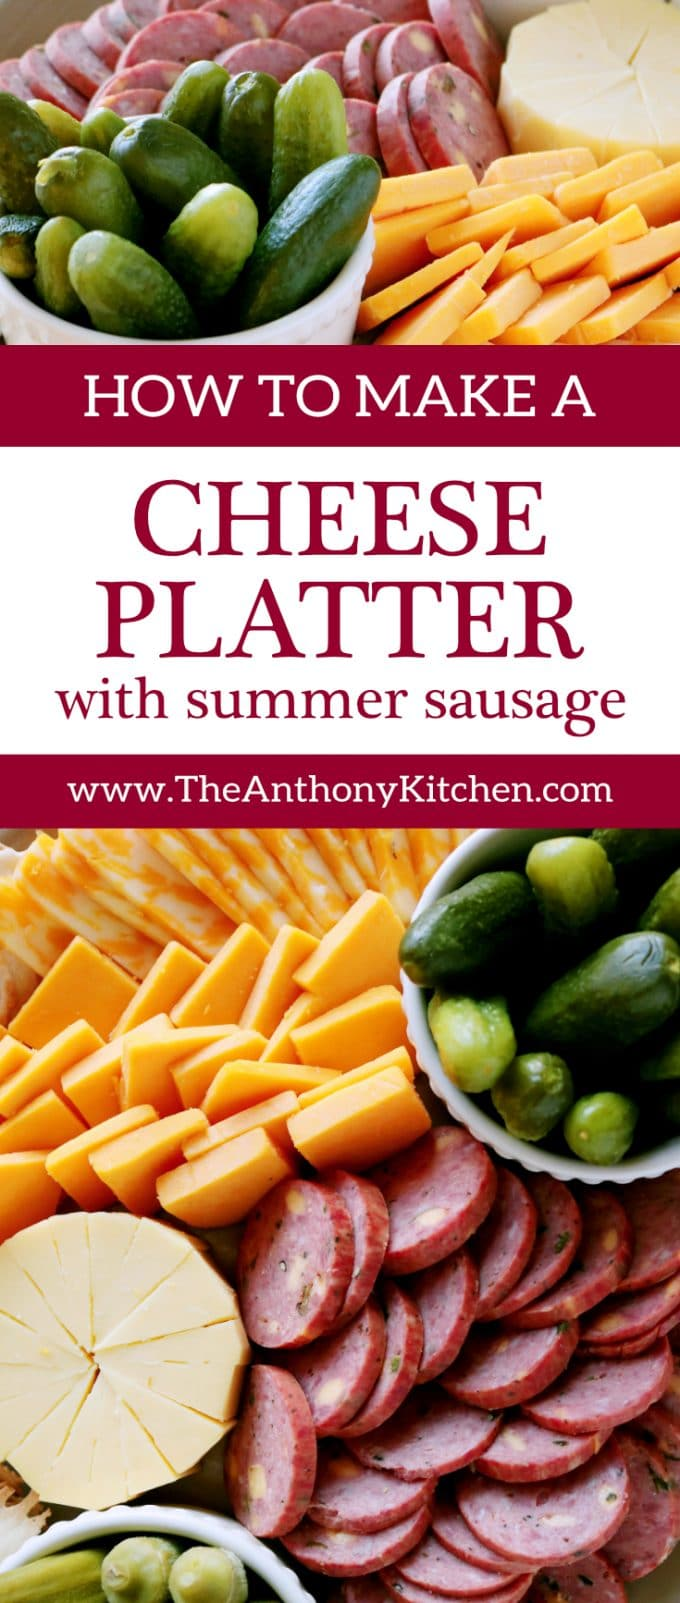 Pinterest image of HOW TO MAKE A CHEESE PLATTER